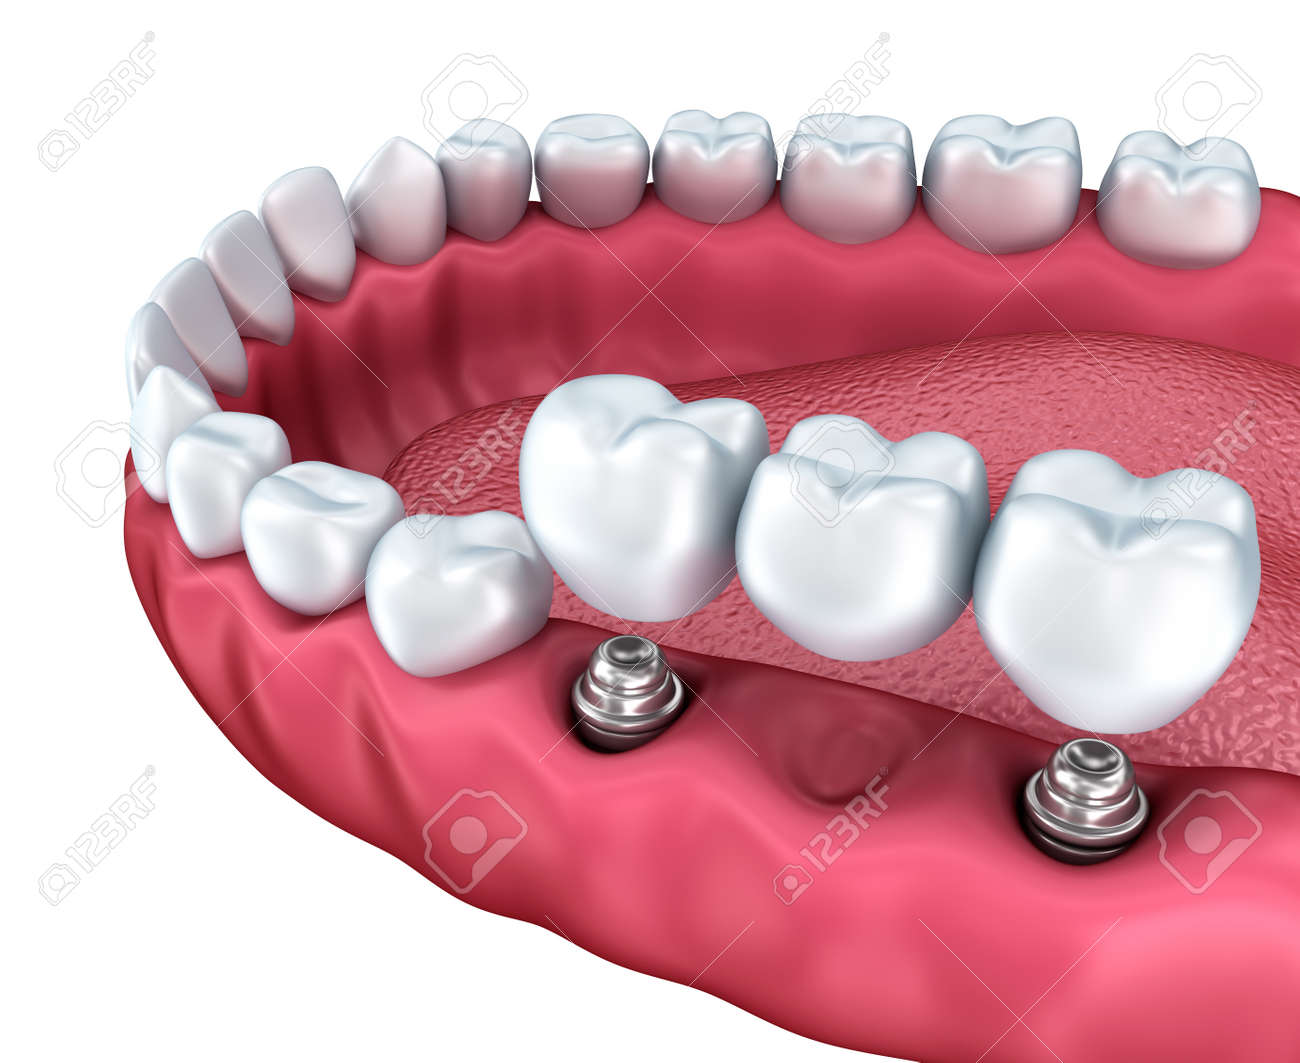 A closeup view of lower teeth and dental implants isolated on white Stock Photo - 40005774